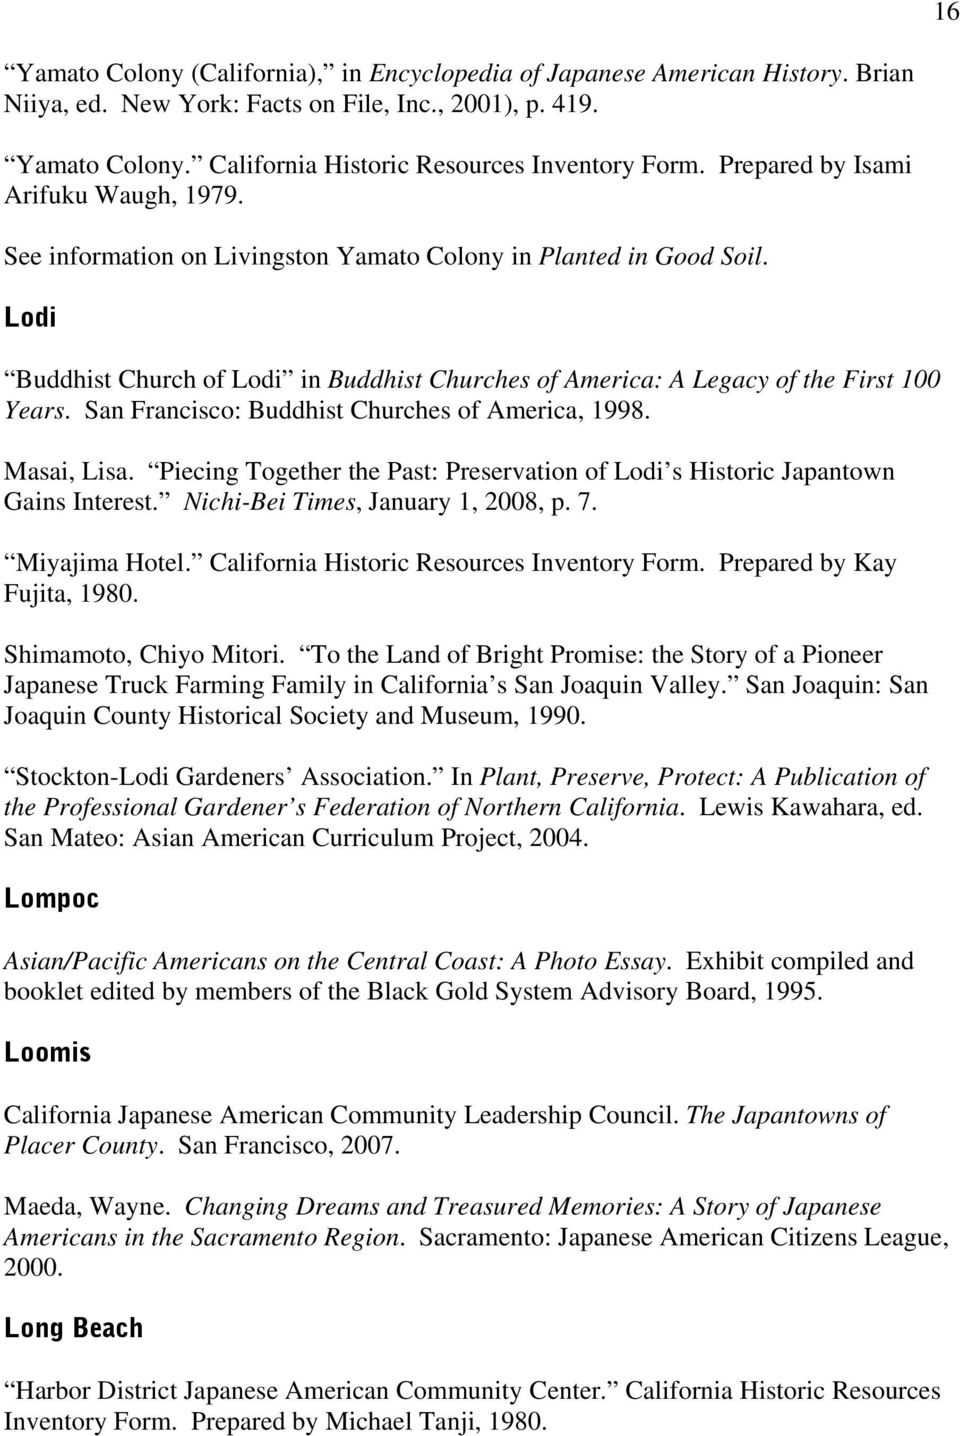 preserving historic resources essay Advisory council on historic preservation property types addressed in the essays include the state historical resources commission modernism committee.